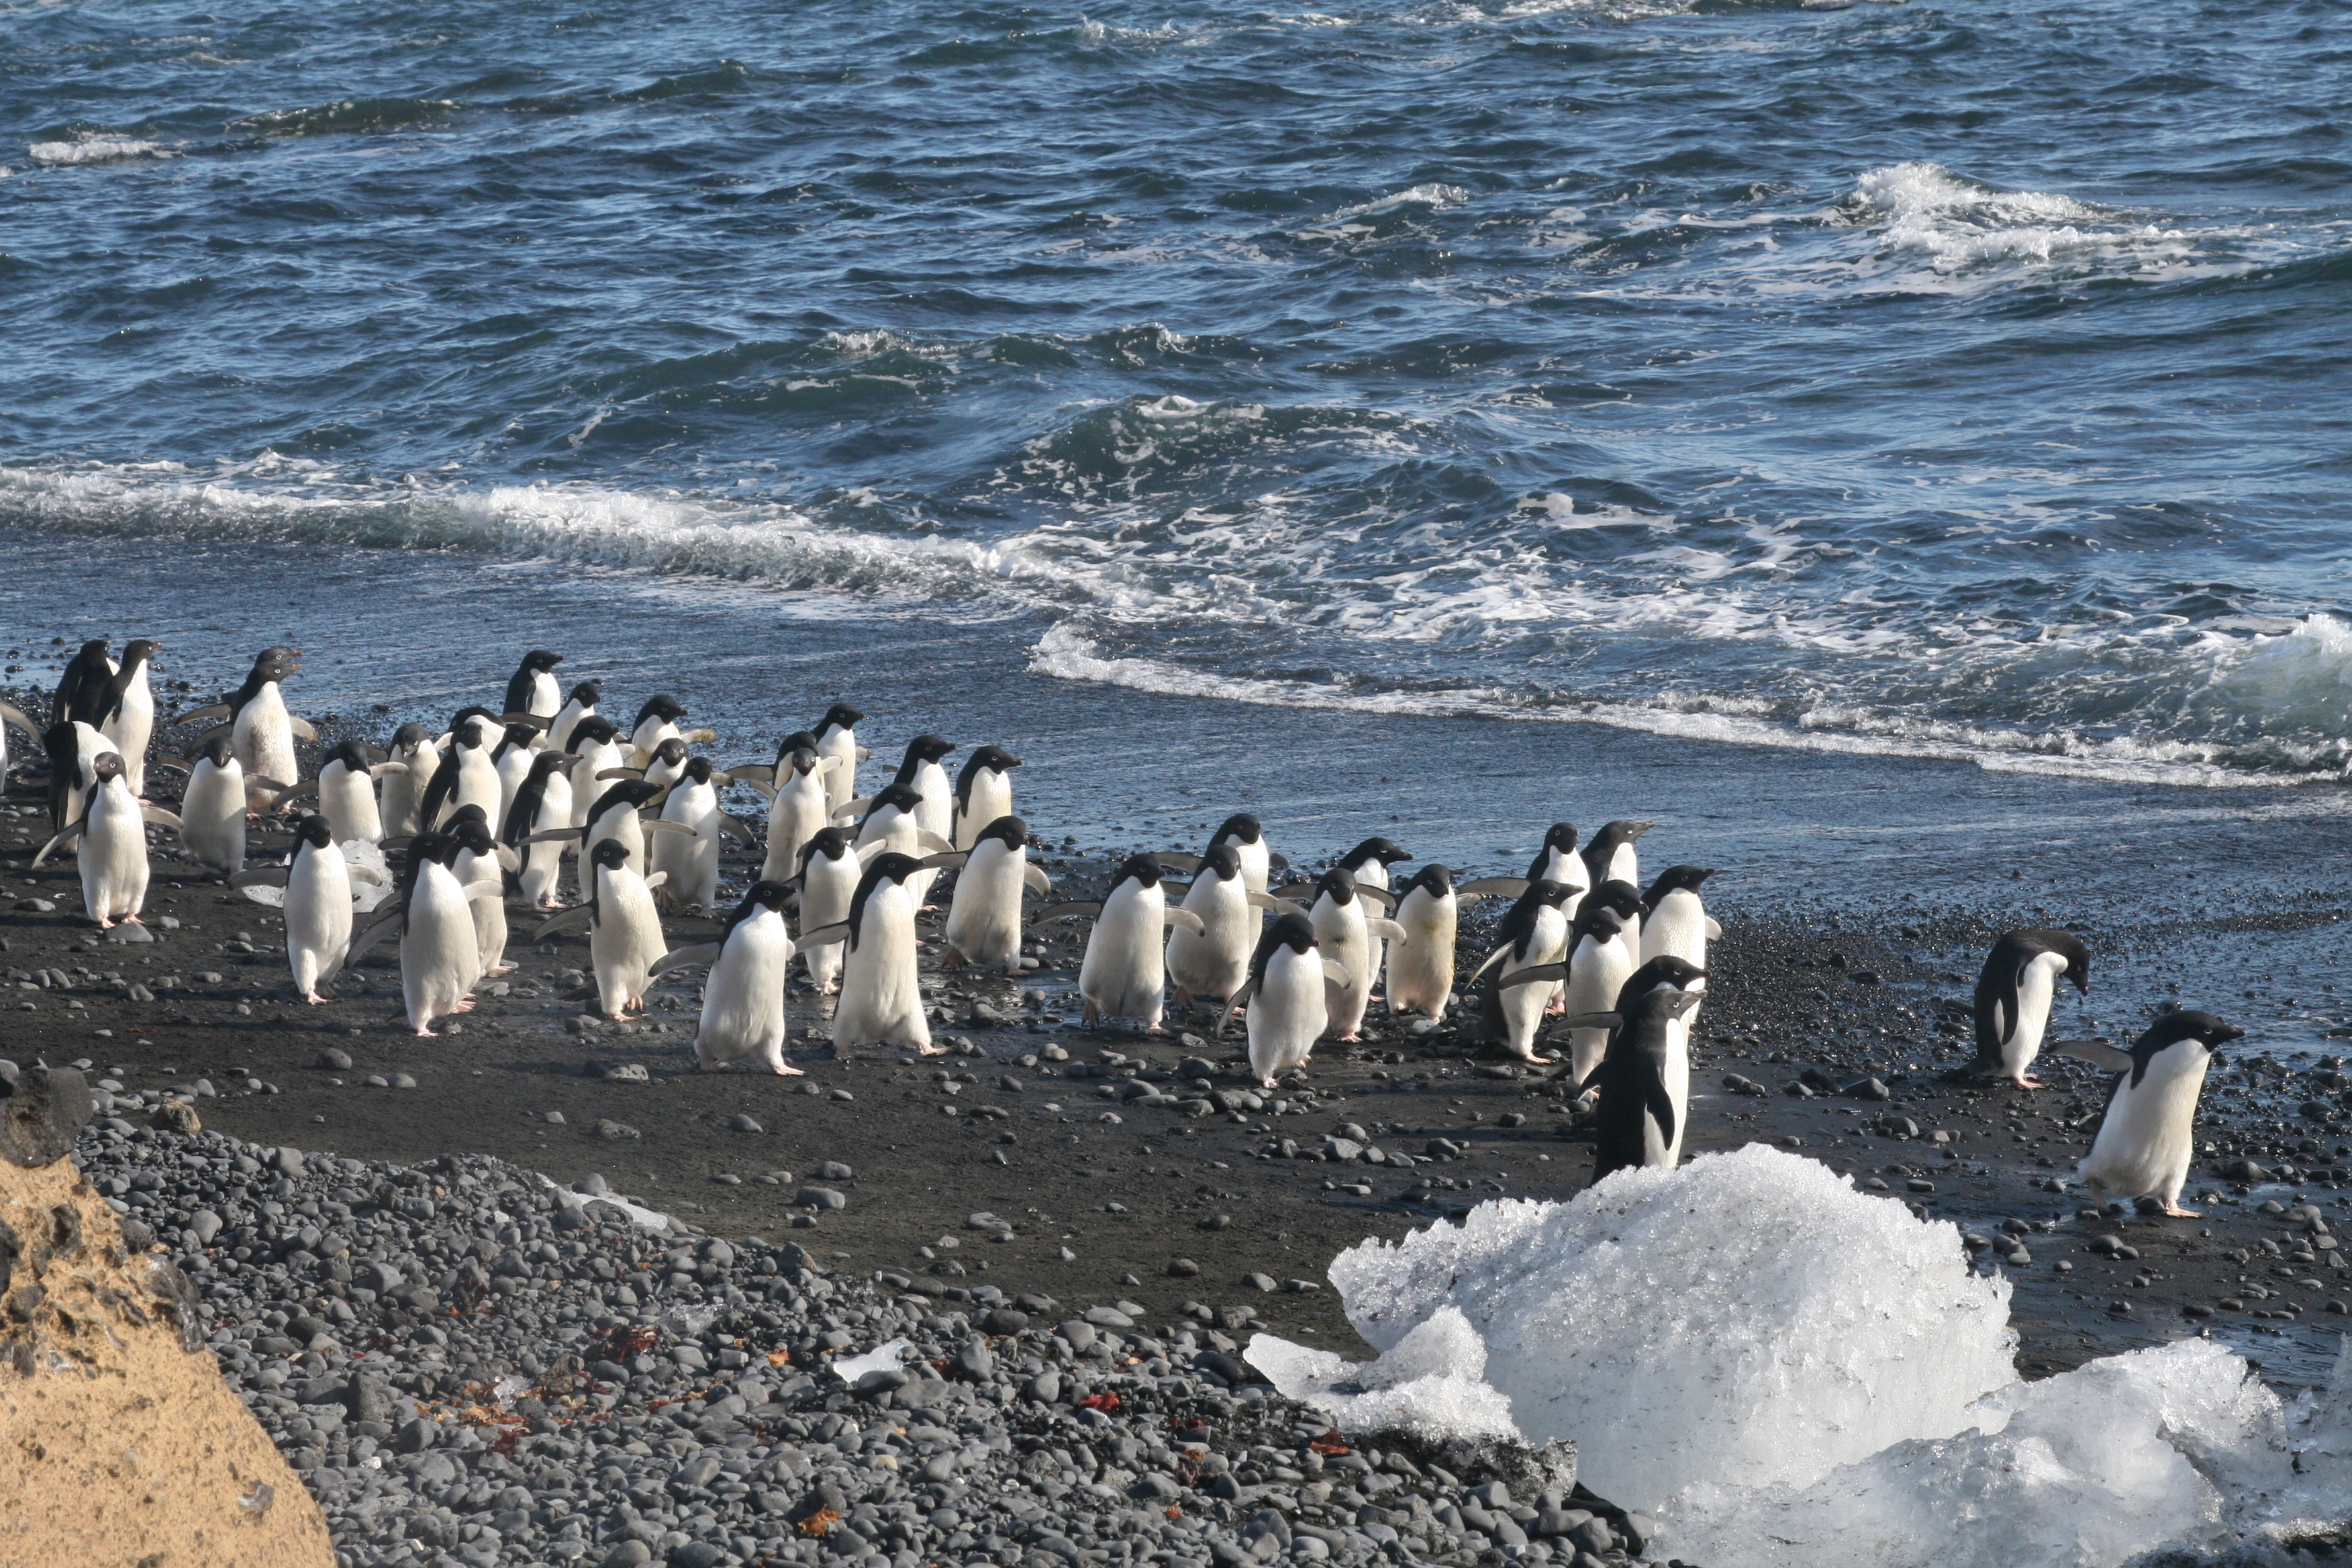 A group of Adélie penguins walks along the beach at Brown Bluff (Photo credit: Brian Druker)